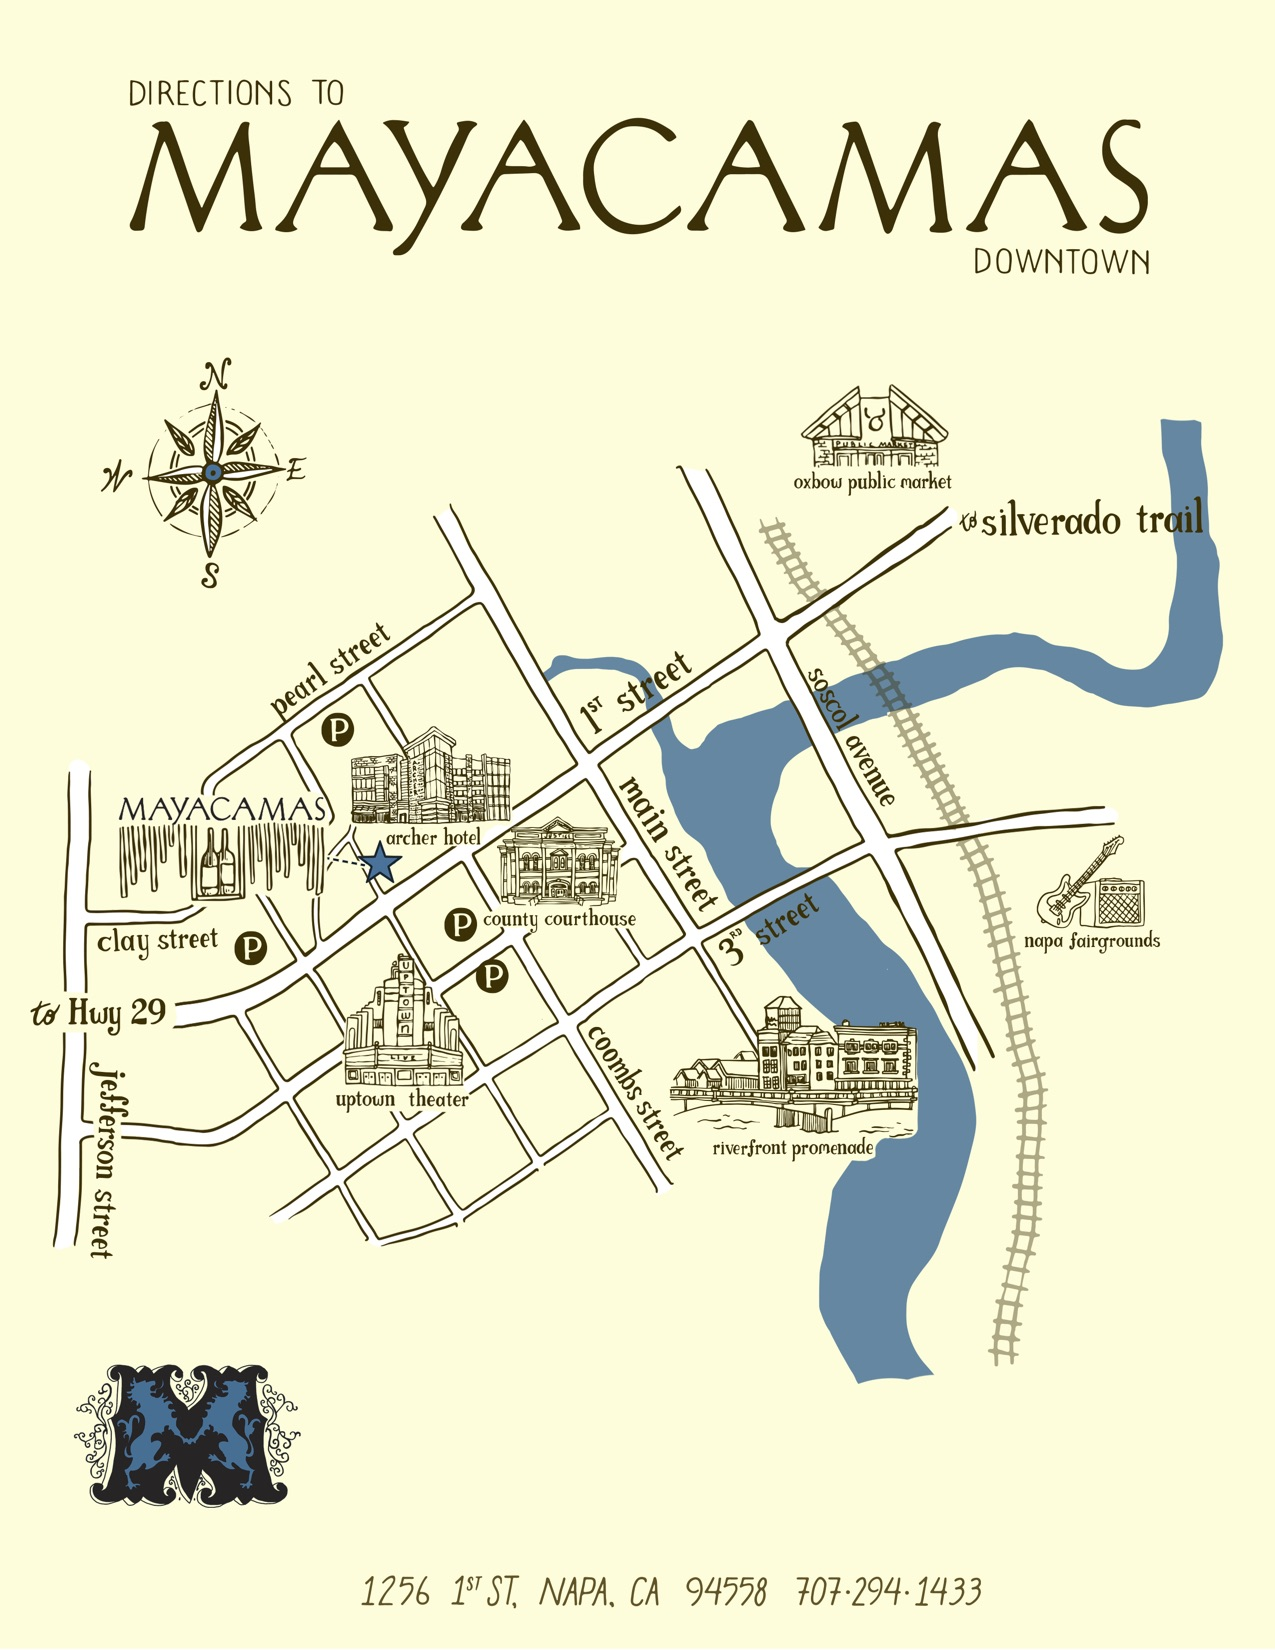 Map to Mayacamas Downtown